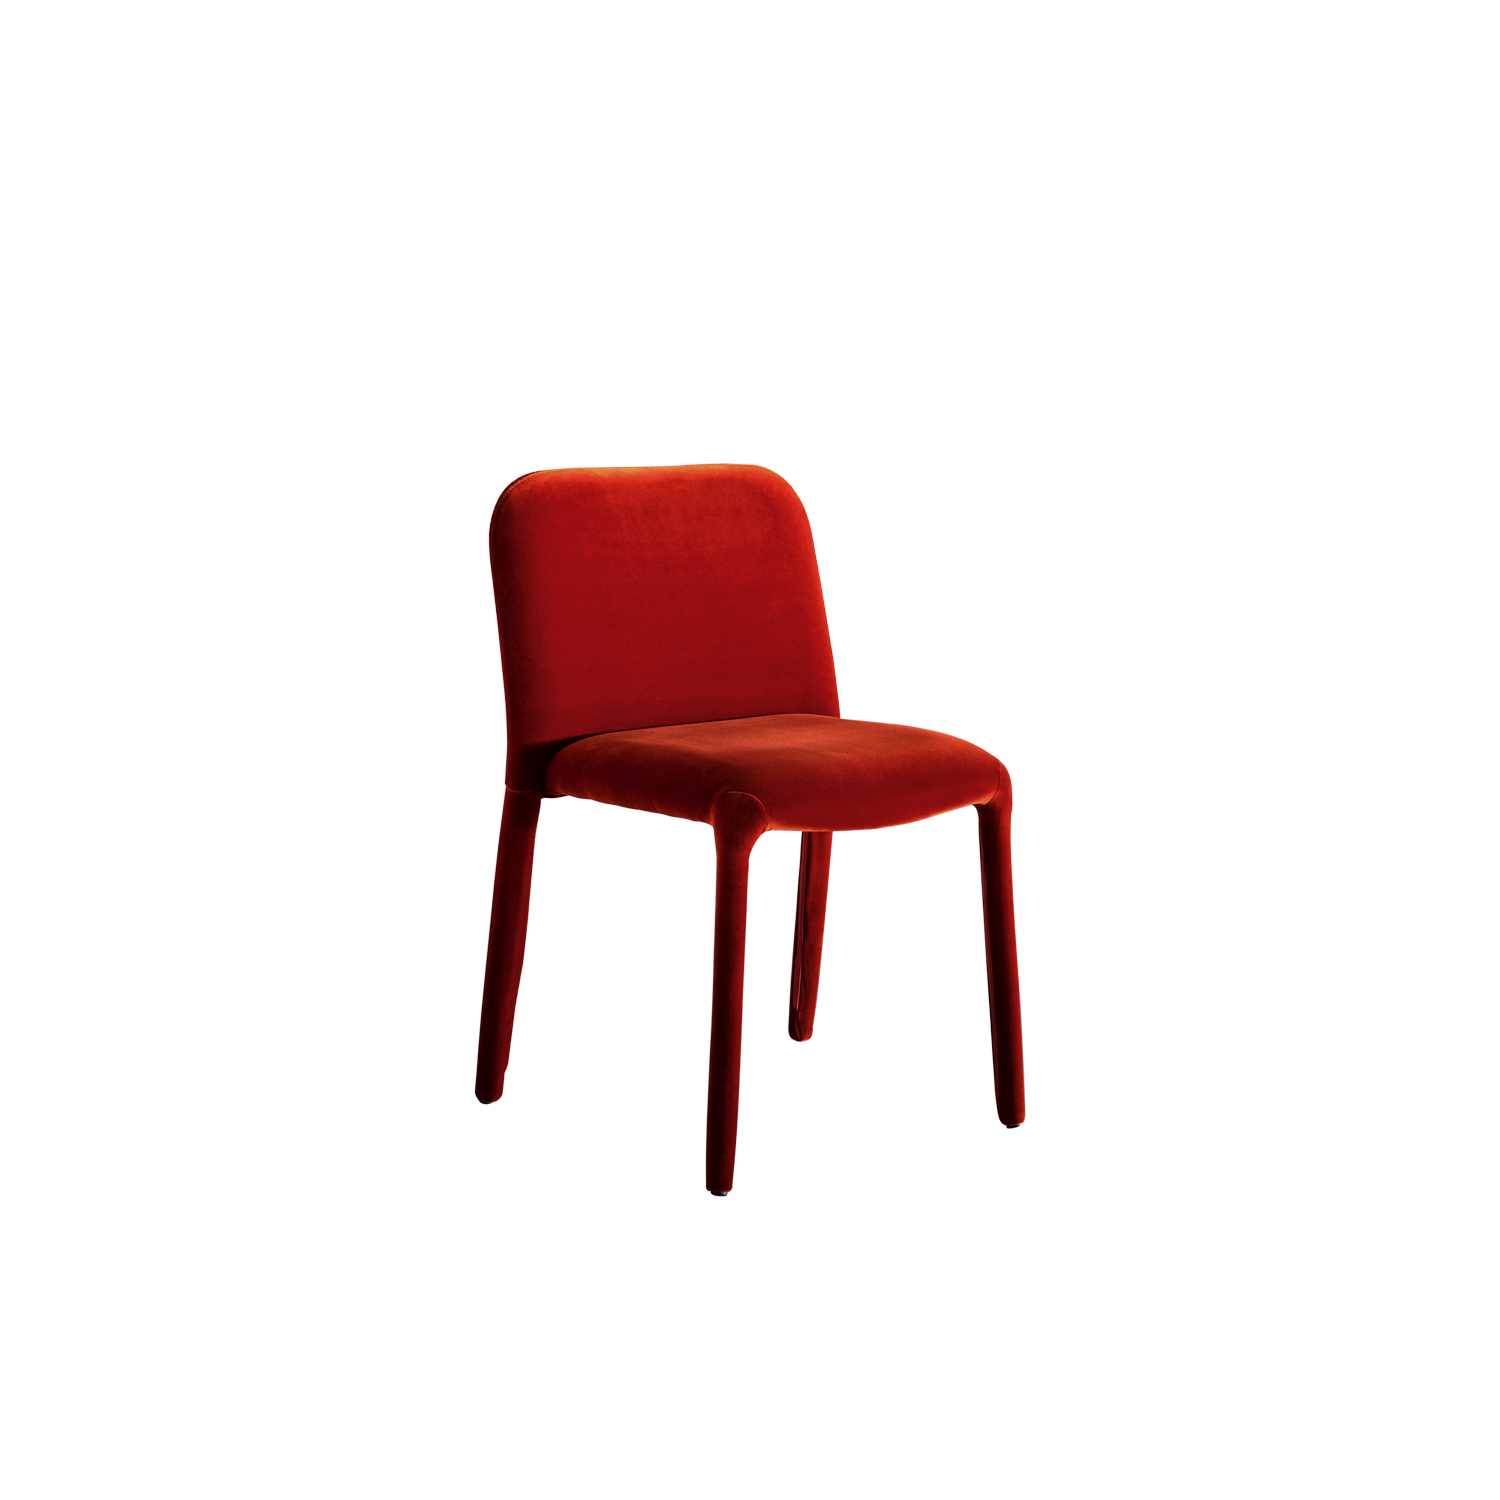 Pelè Chair - Pelè is completely padded, from the backrest to the legs. With its bourgeois air and rounded shape, it is extremely versatile and fits in any environment.